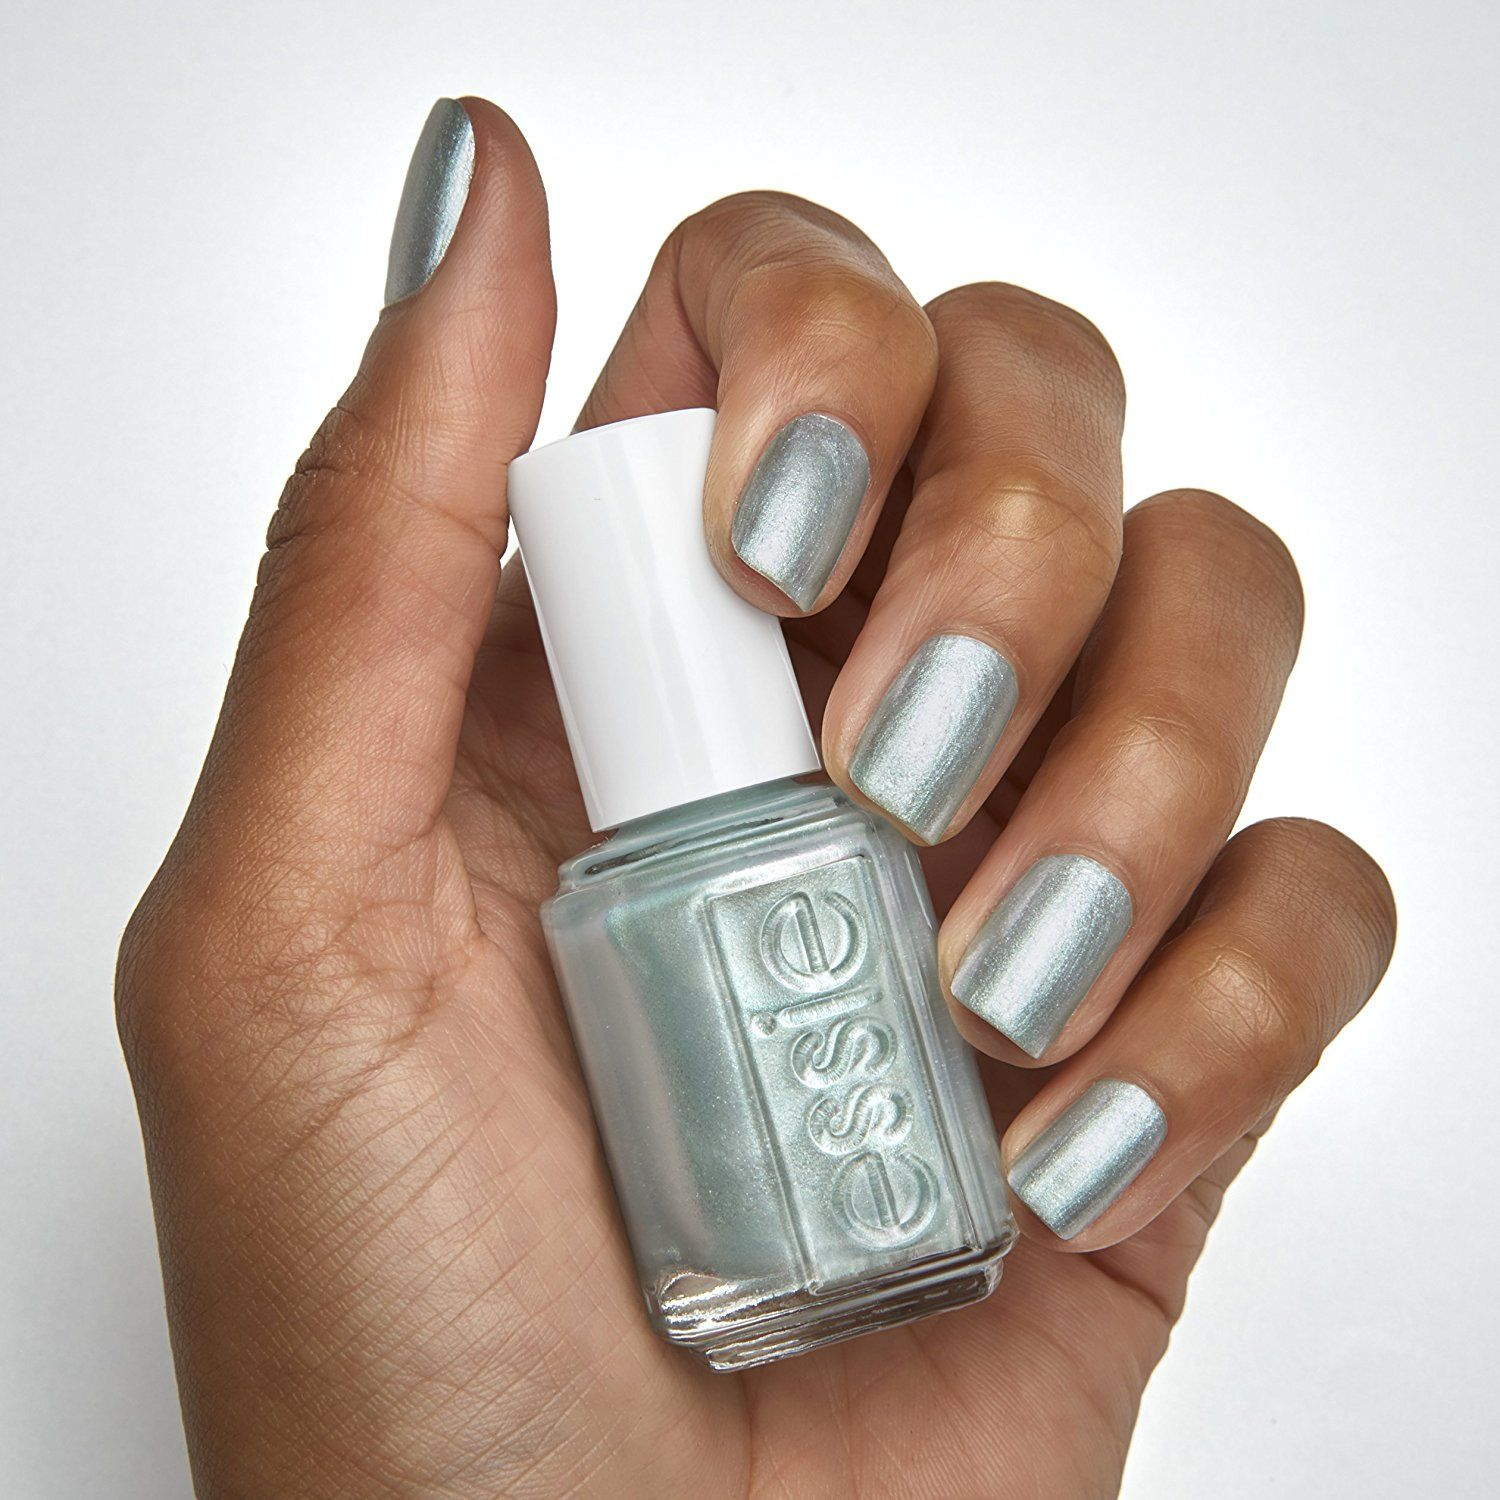 Amazon.com: essie 2018 Seaglass Shimmers Nail Polish Collection, At ...